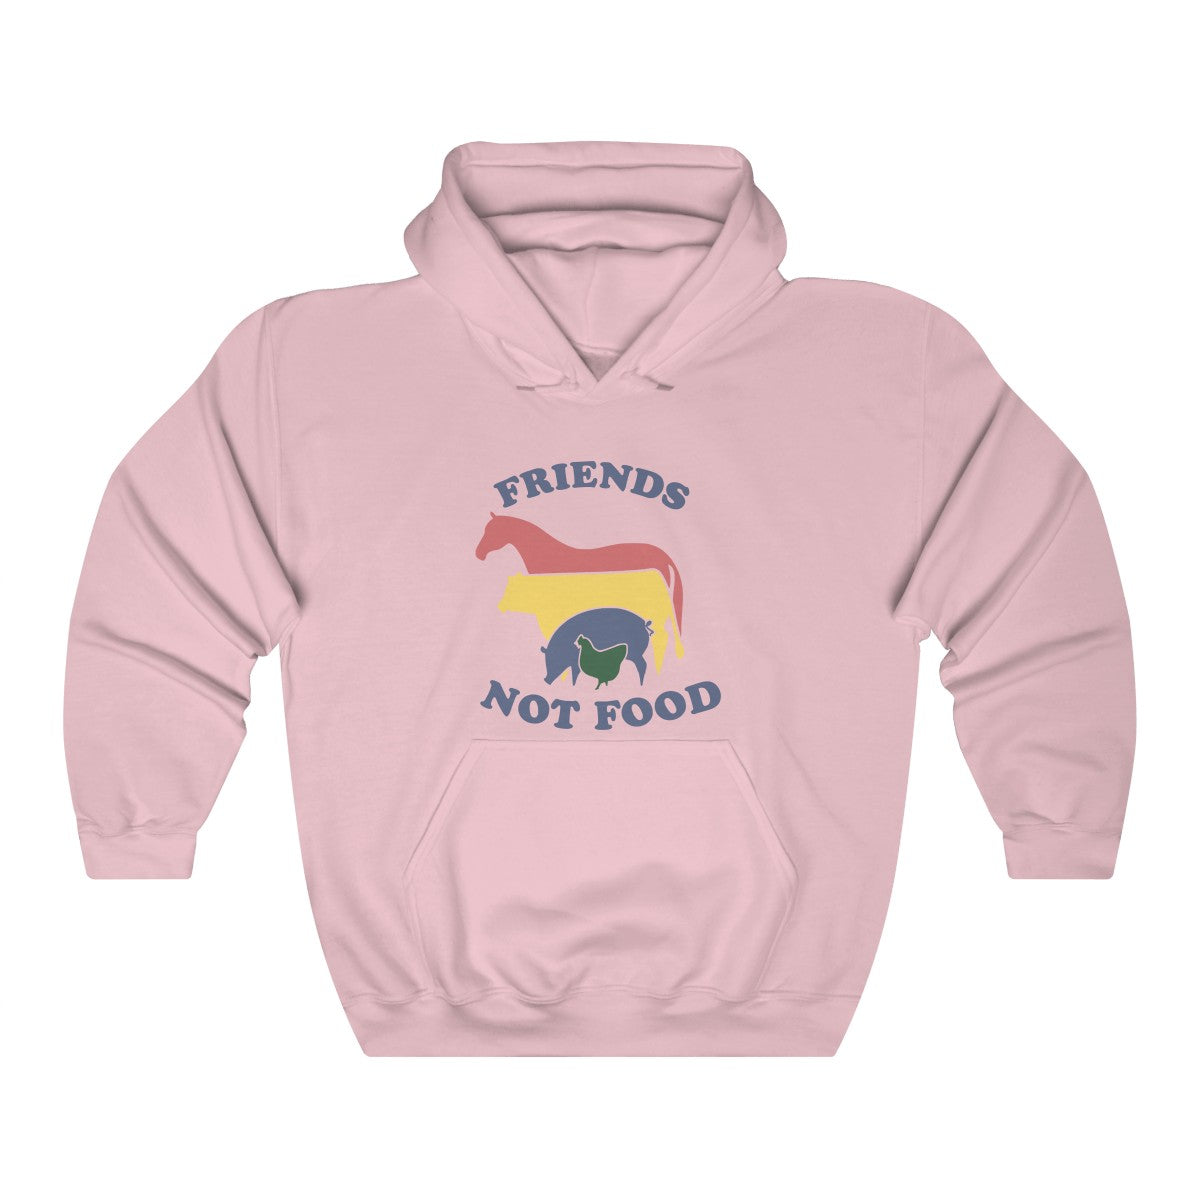 Retro Friends Not Food Unisex Heavy Blend™ Hooded Sweatshirt